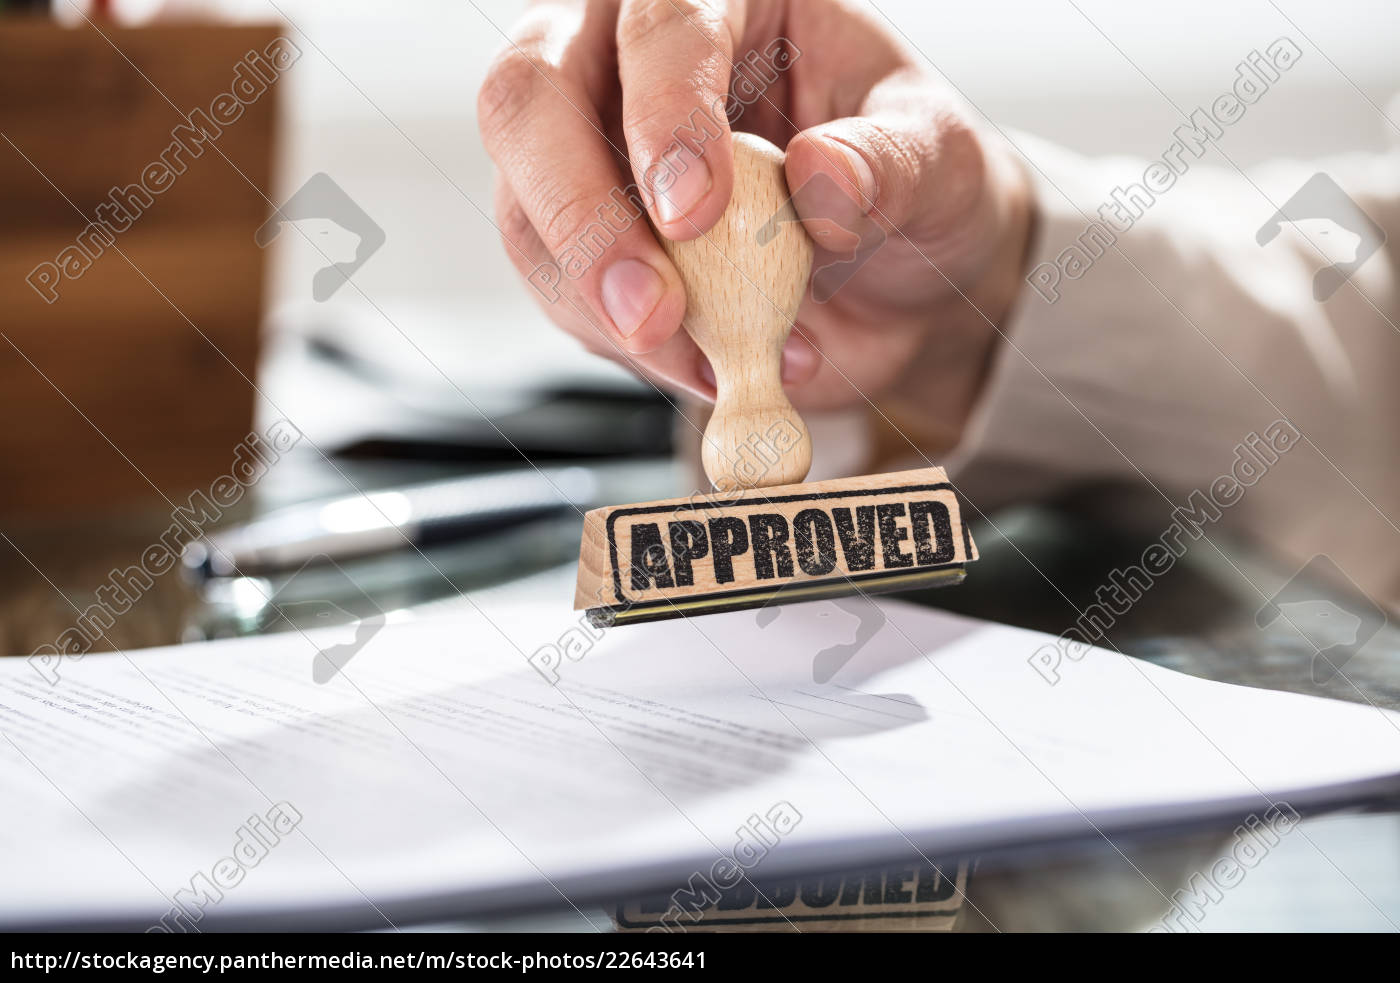 person, holding, approved, stamp, on, document - 22643641